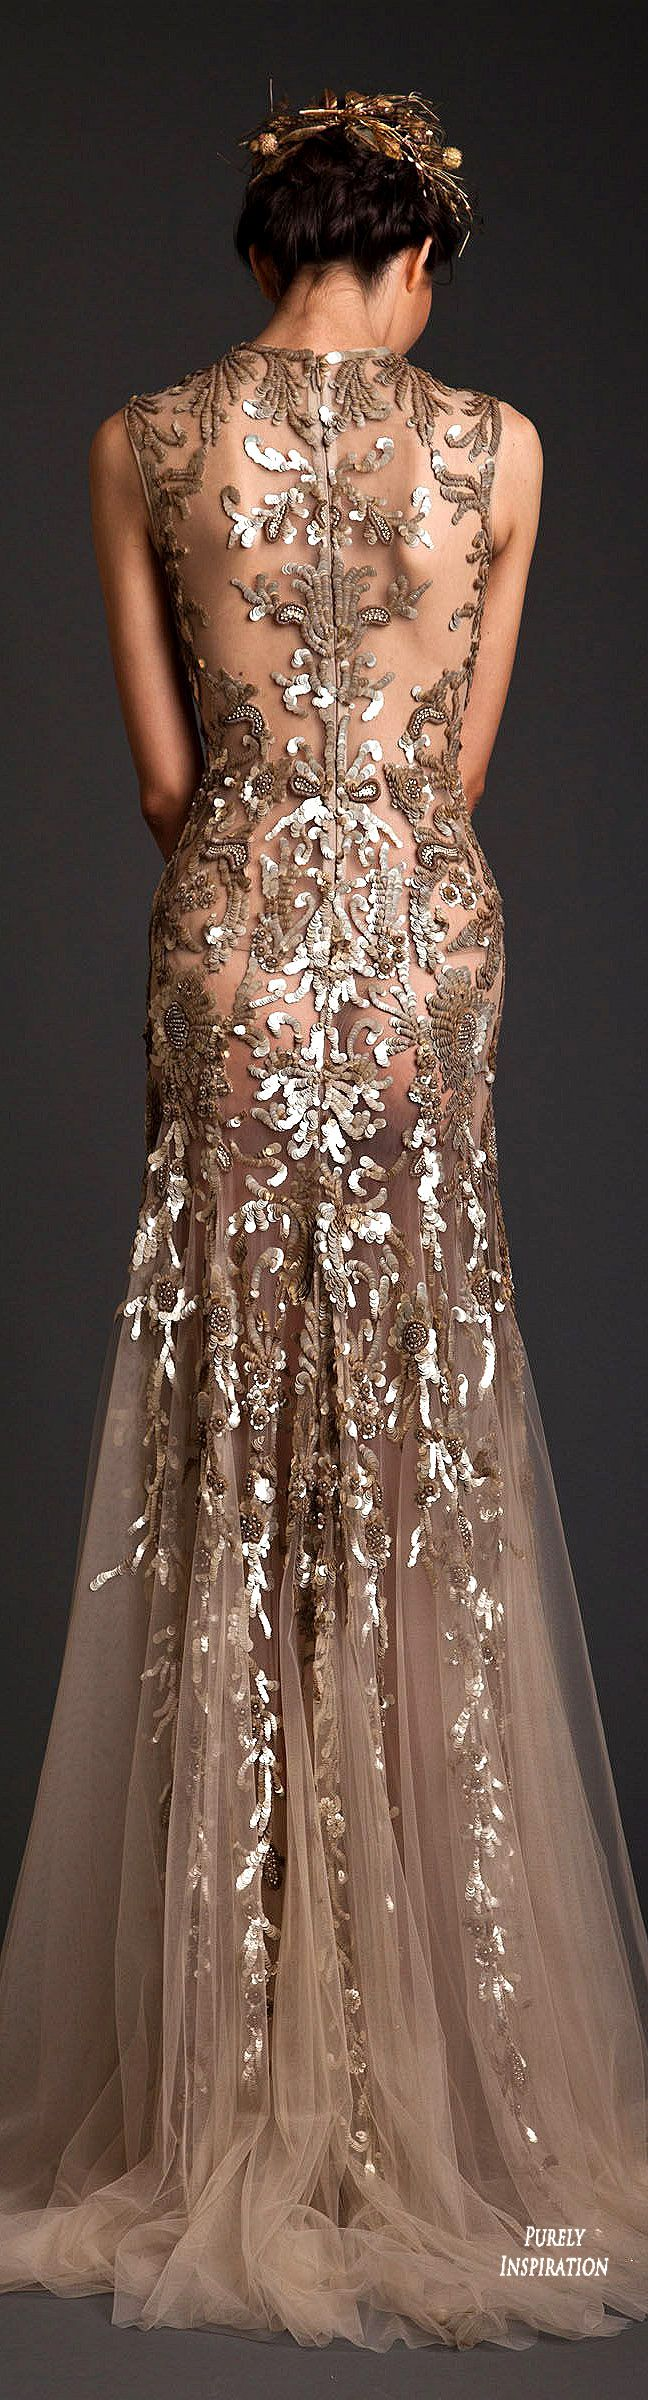 17 Best Ideas About Haute Couture On Pinterest Haute Couture Fashion Couture And Couture Dresses